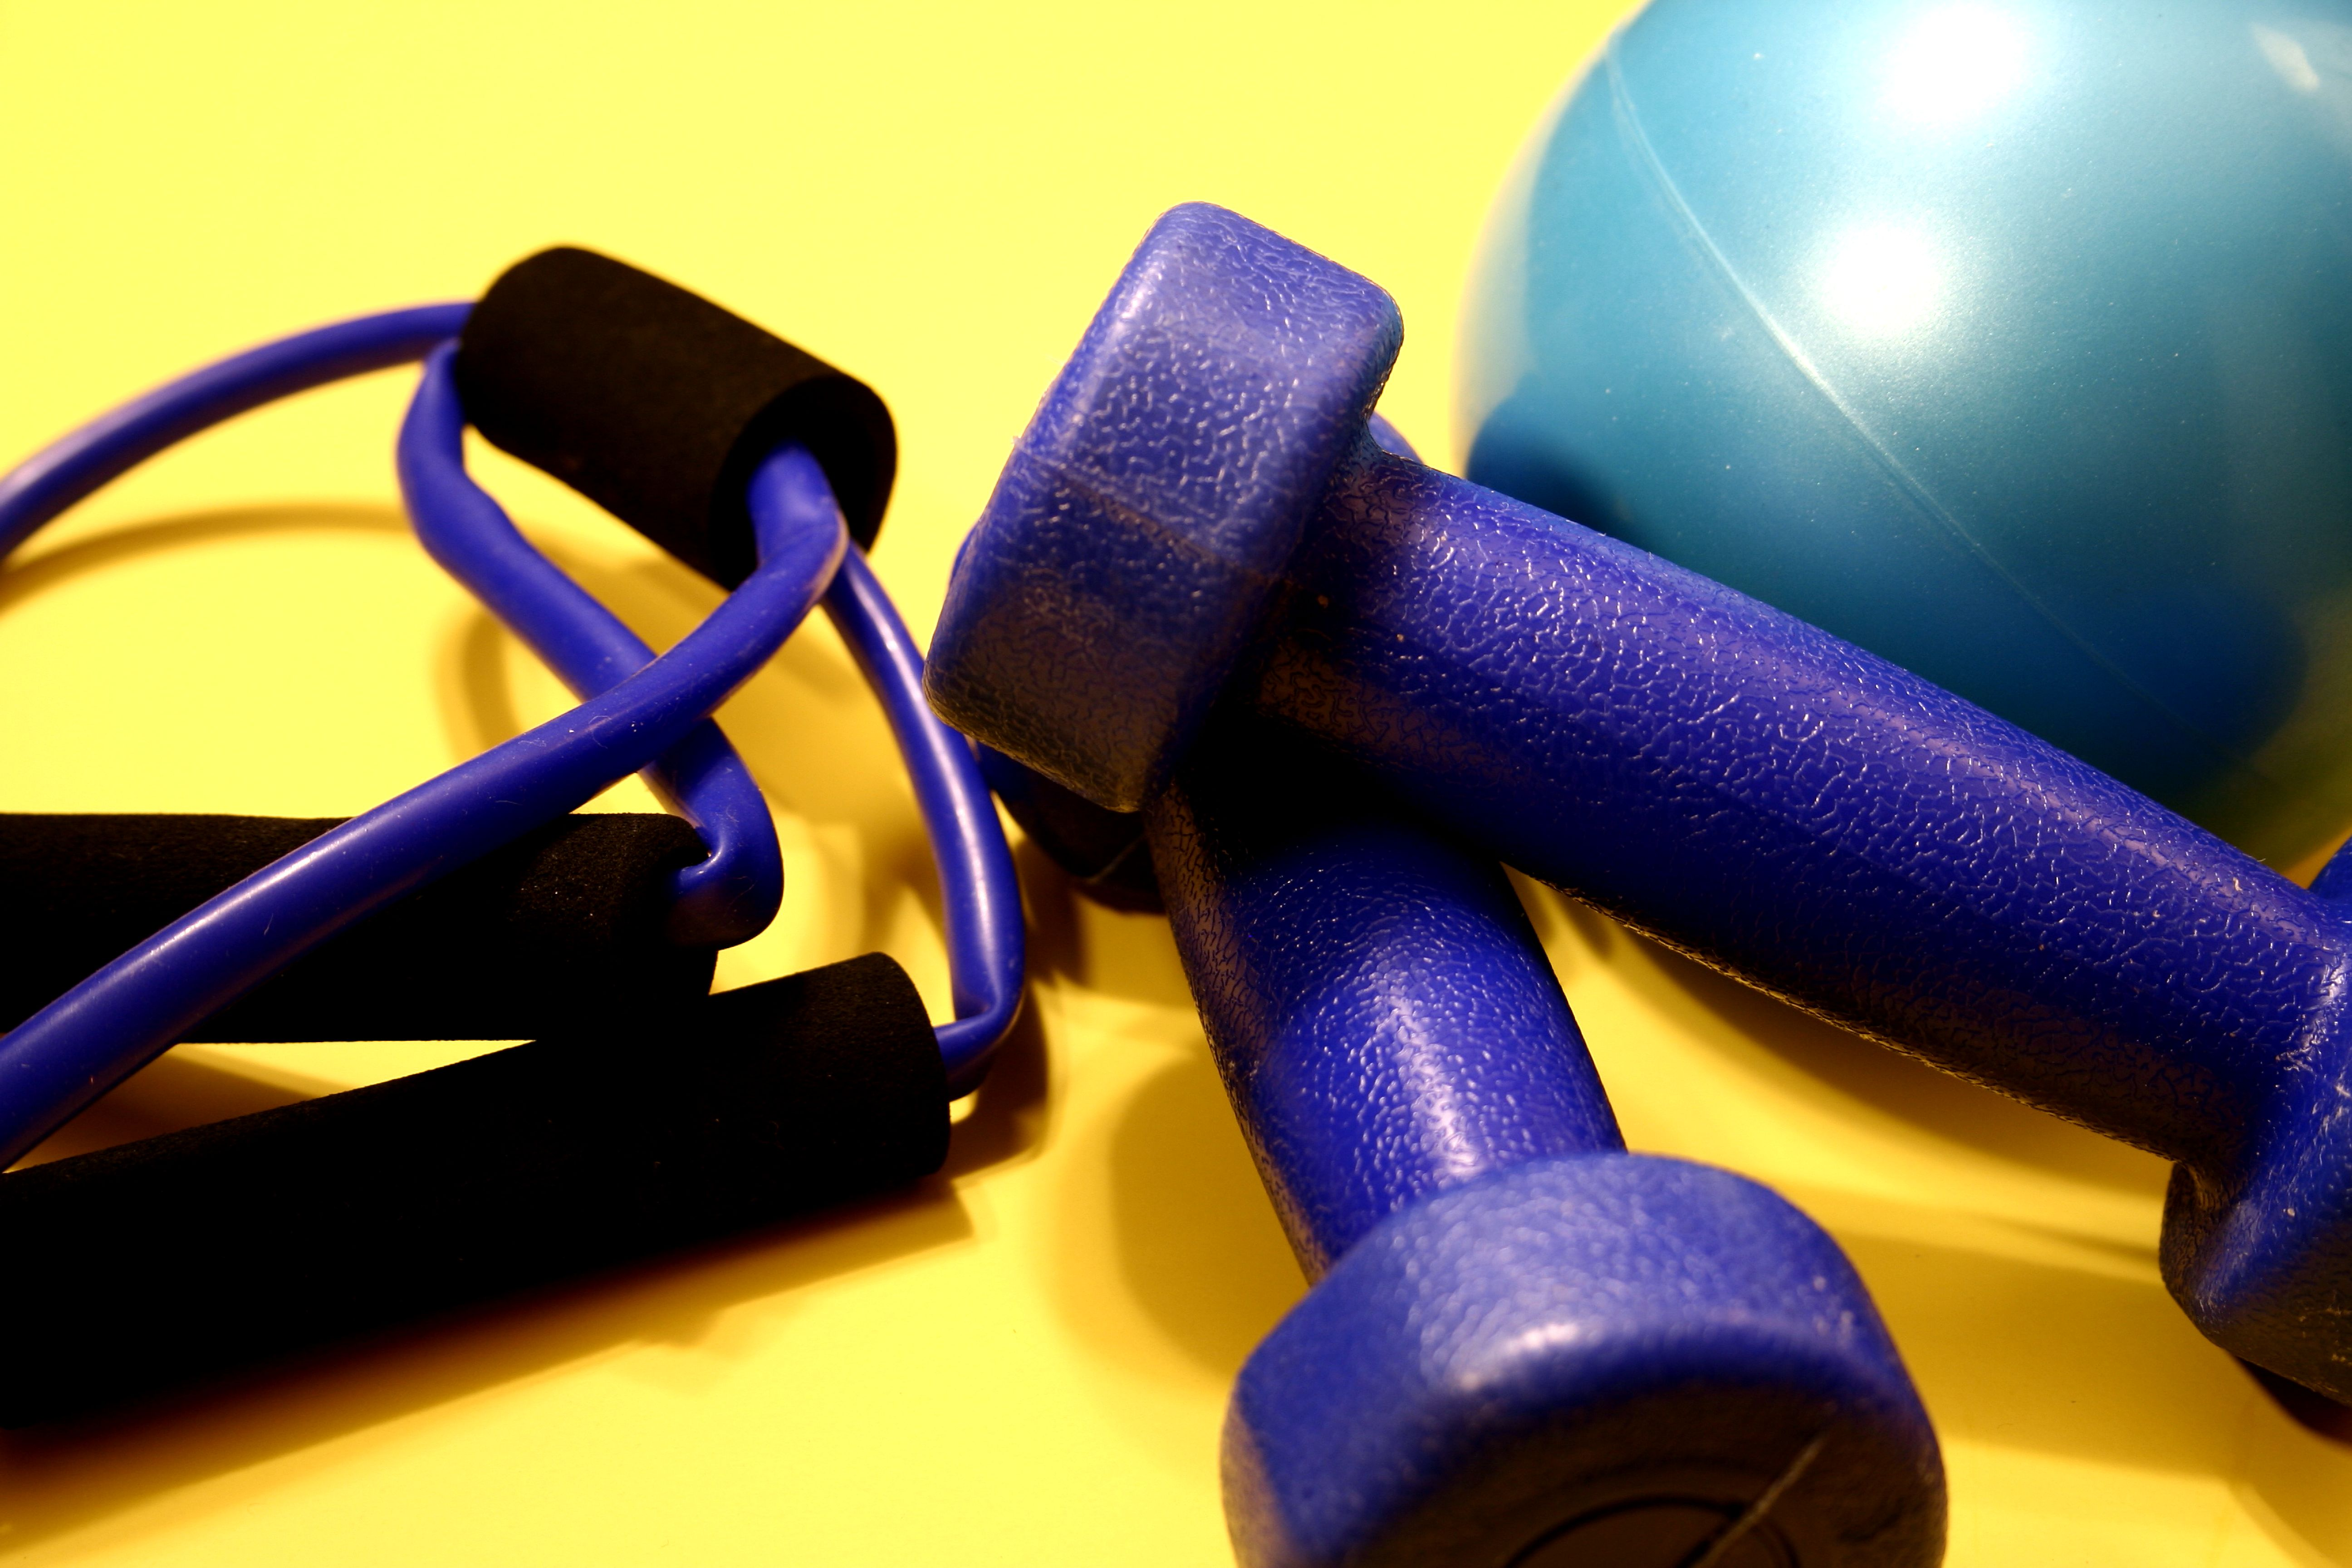 genesis medical associates inc 5 exercise myths that are just